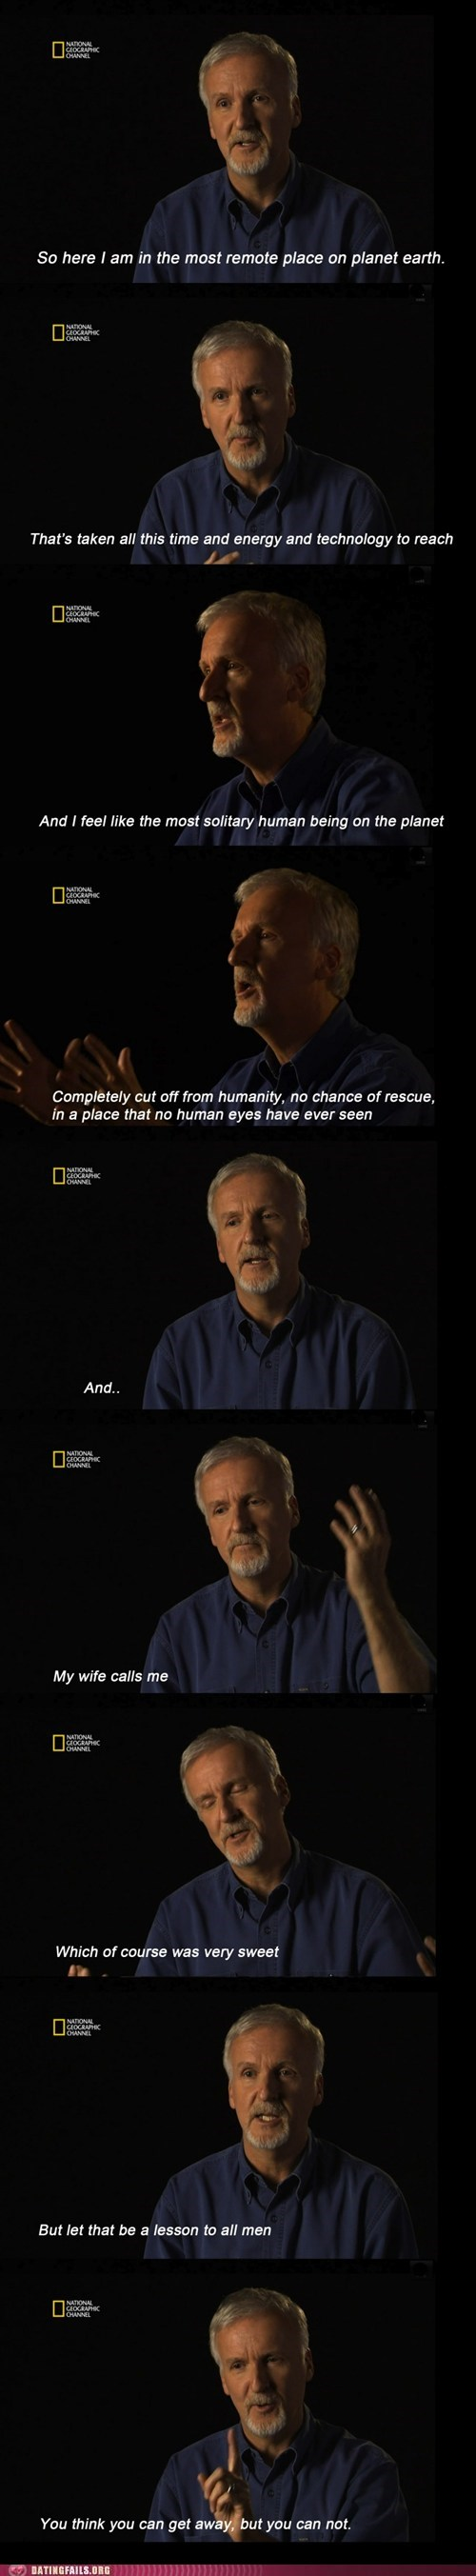 james cameron,most remote place on earth,no escaping,technology,titanic